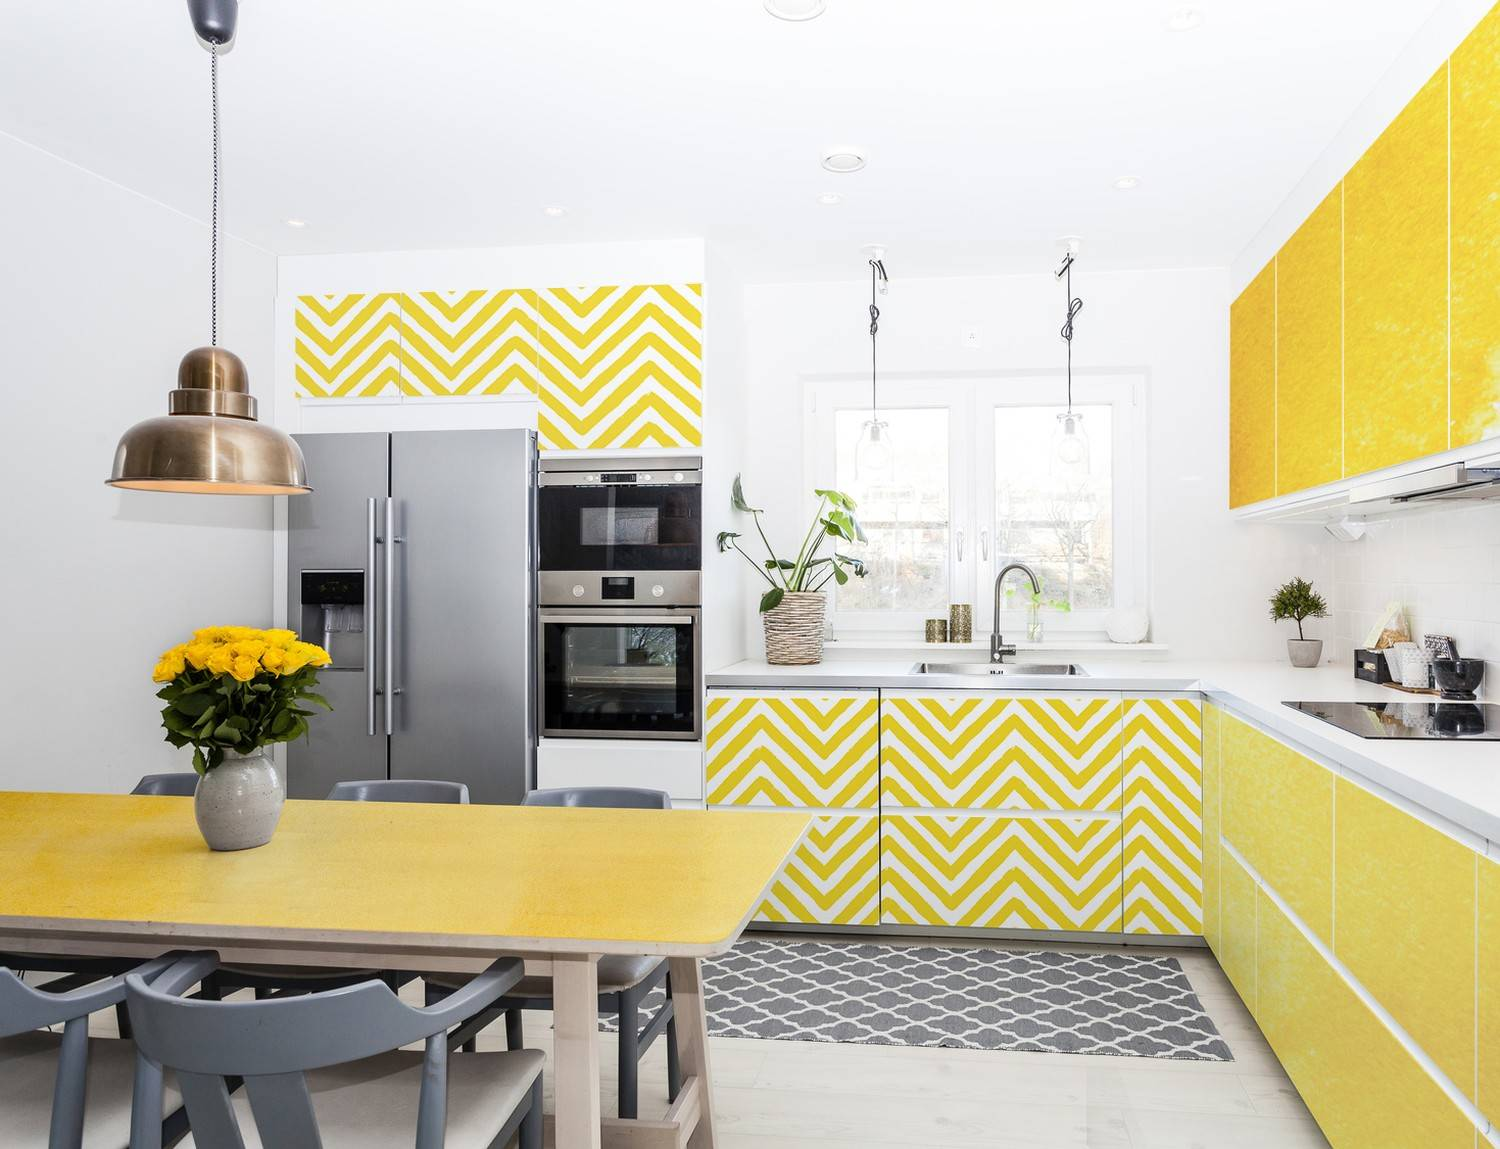 Lemon kitchen • Kitchen - Contemporary - Stickers - Abstraction ...